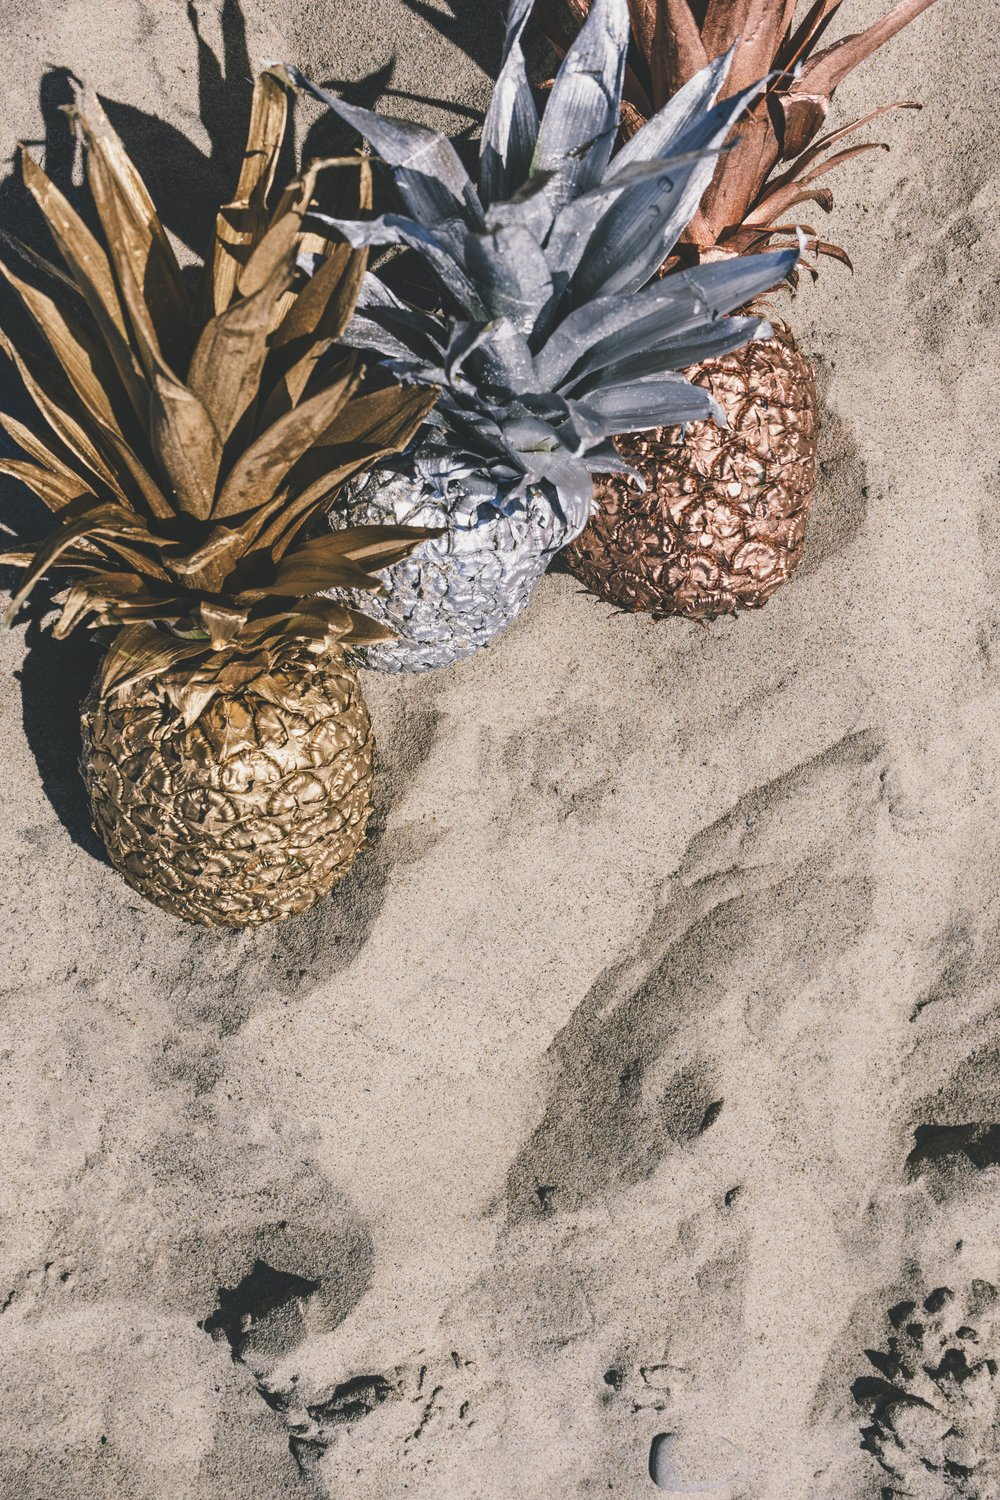 pineapple-supply-co-102693-unsplash.jpg